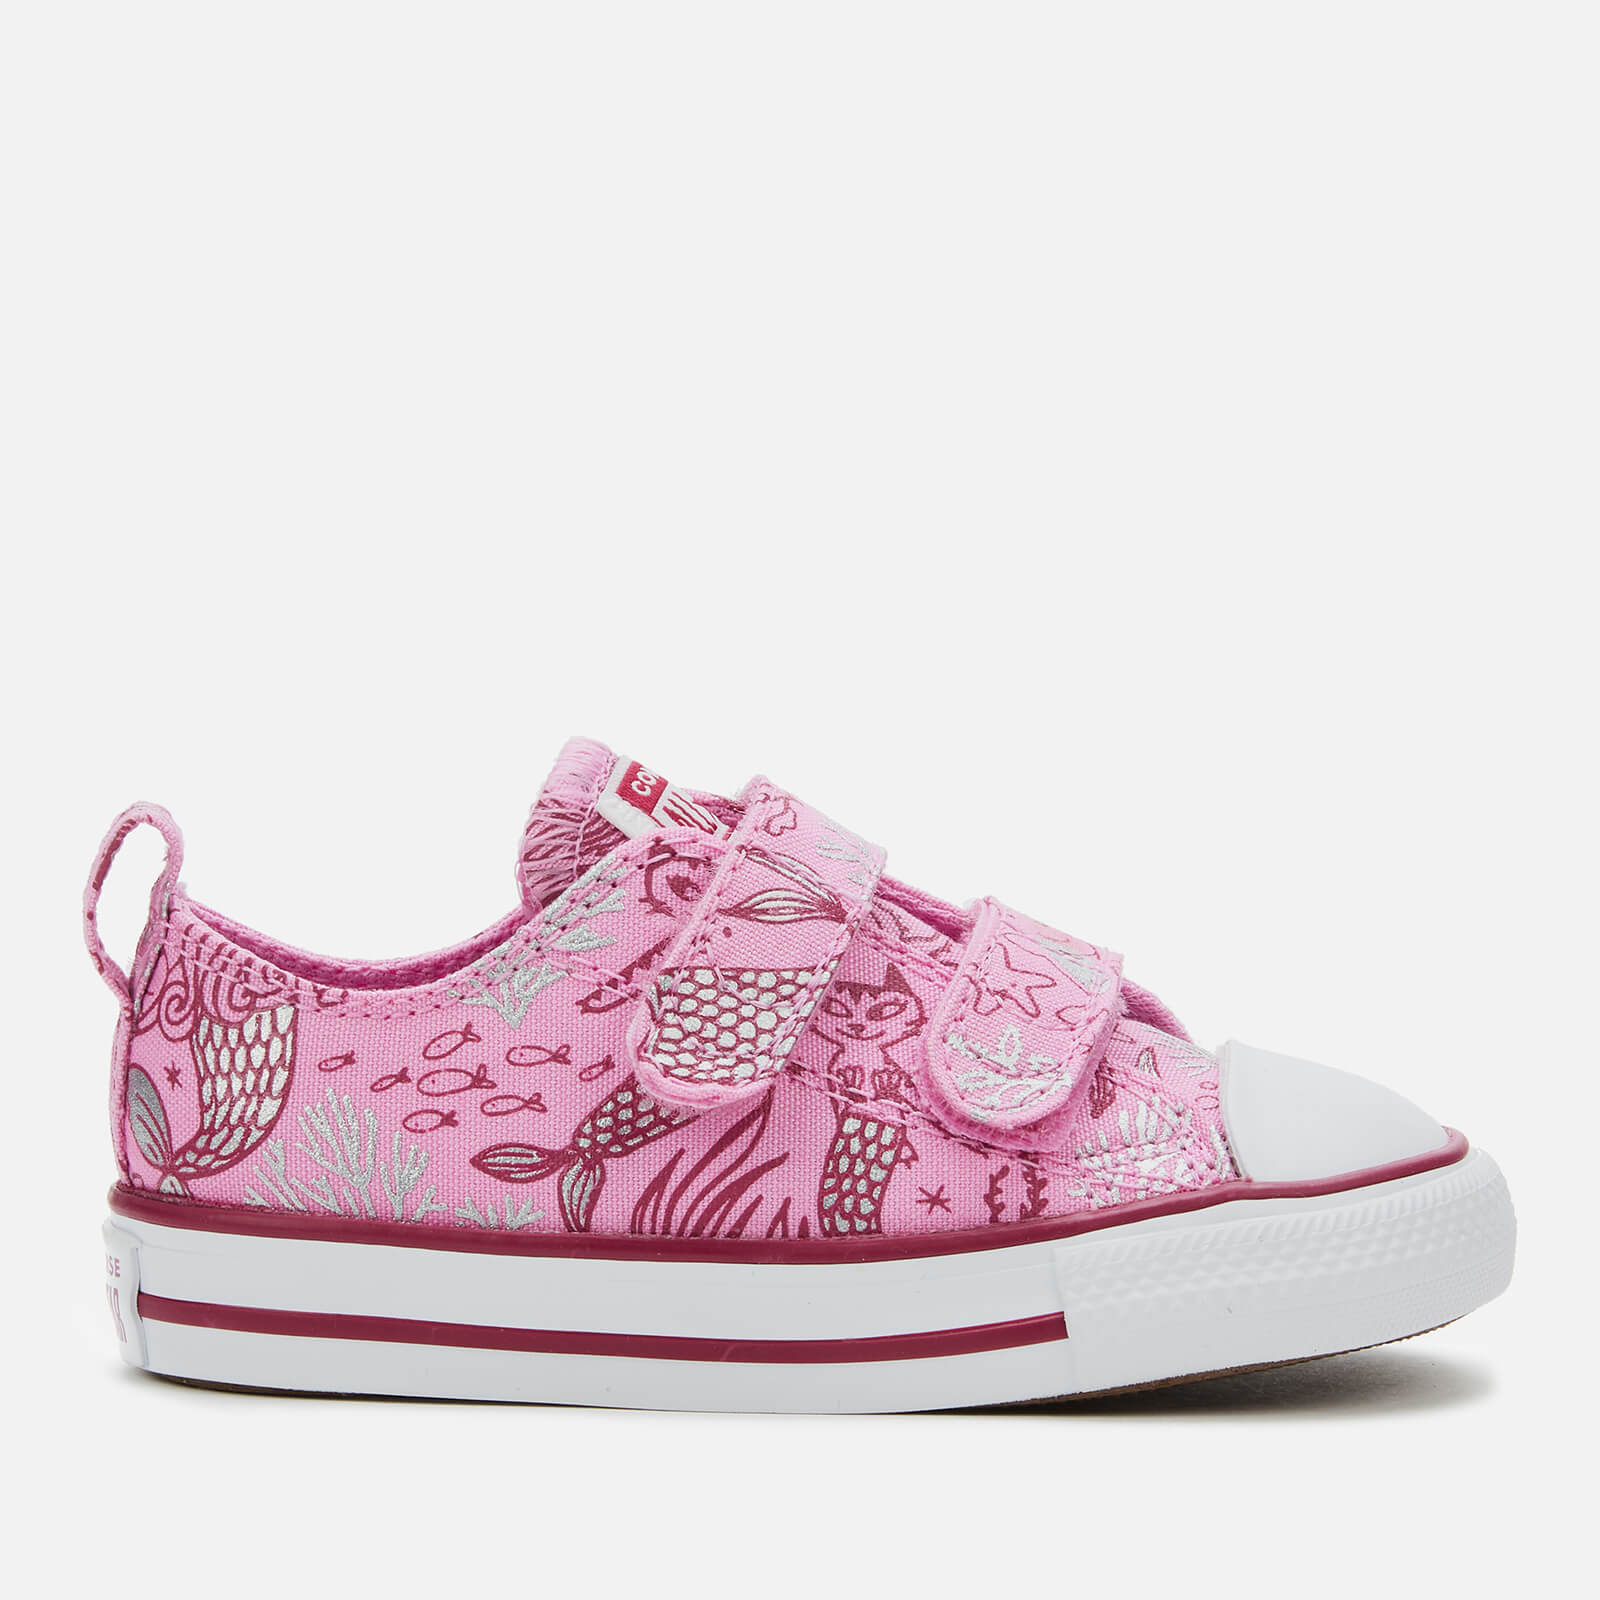 Converse Toddlers' Chuck Taylor All Star 2V Mermaid Ox Trainers Peony PinkRose MaroonWhite